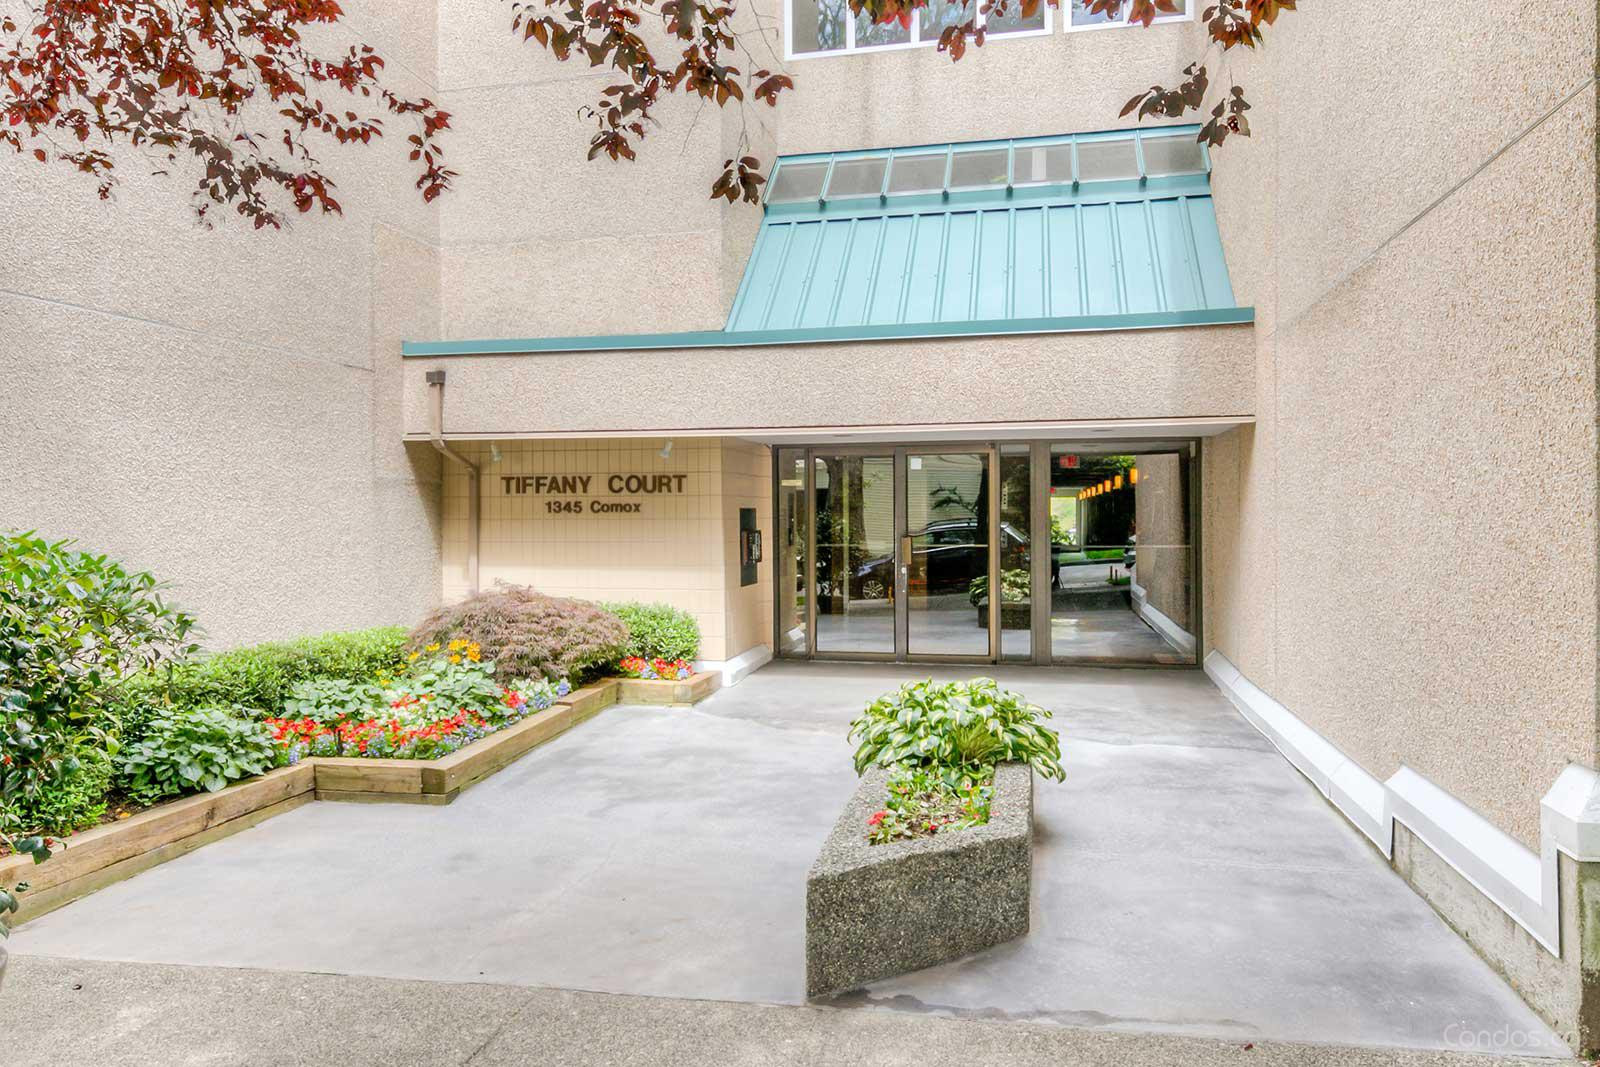 Tiffany Court at 1345 Comox St, Vancouver 0